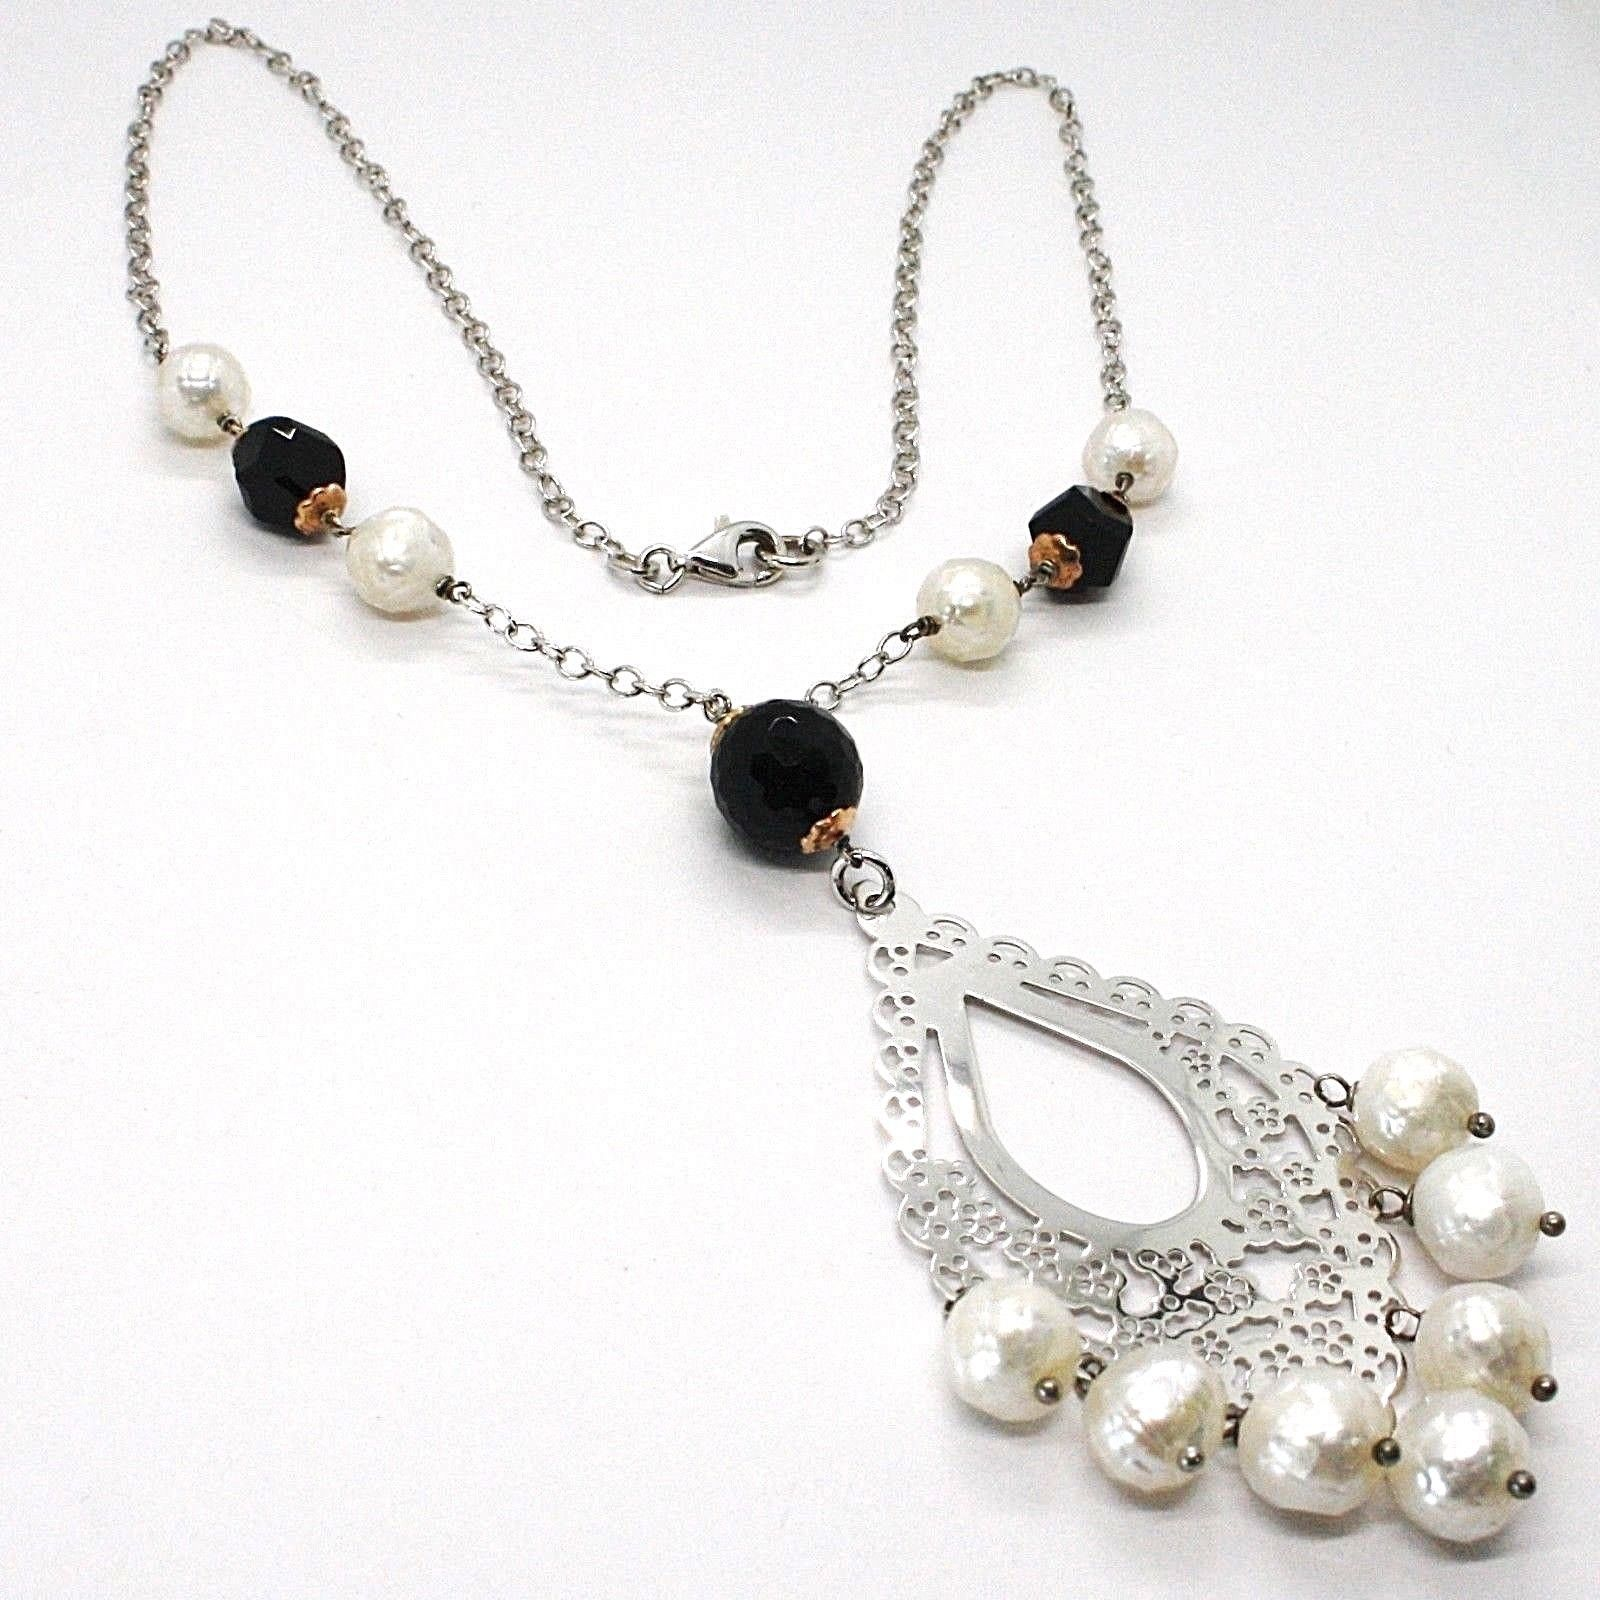 COLLANA ARGENTO 925, ONICE NERA, PERLE BIANCHE, PENDENTE FLOREALE